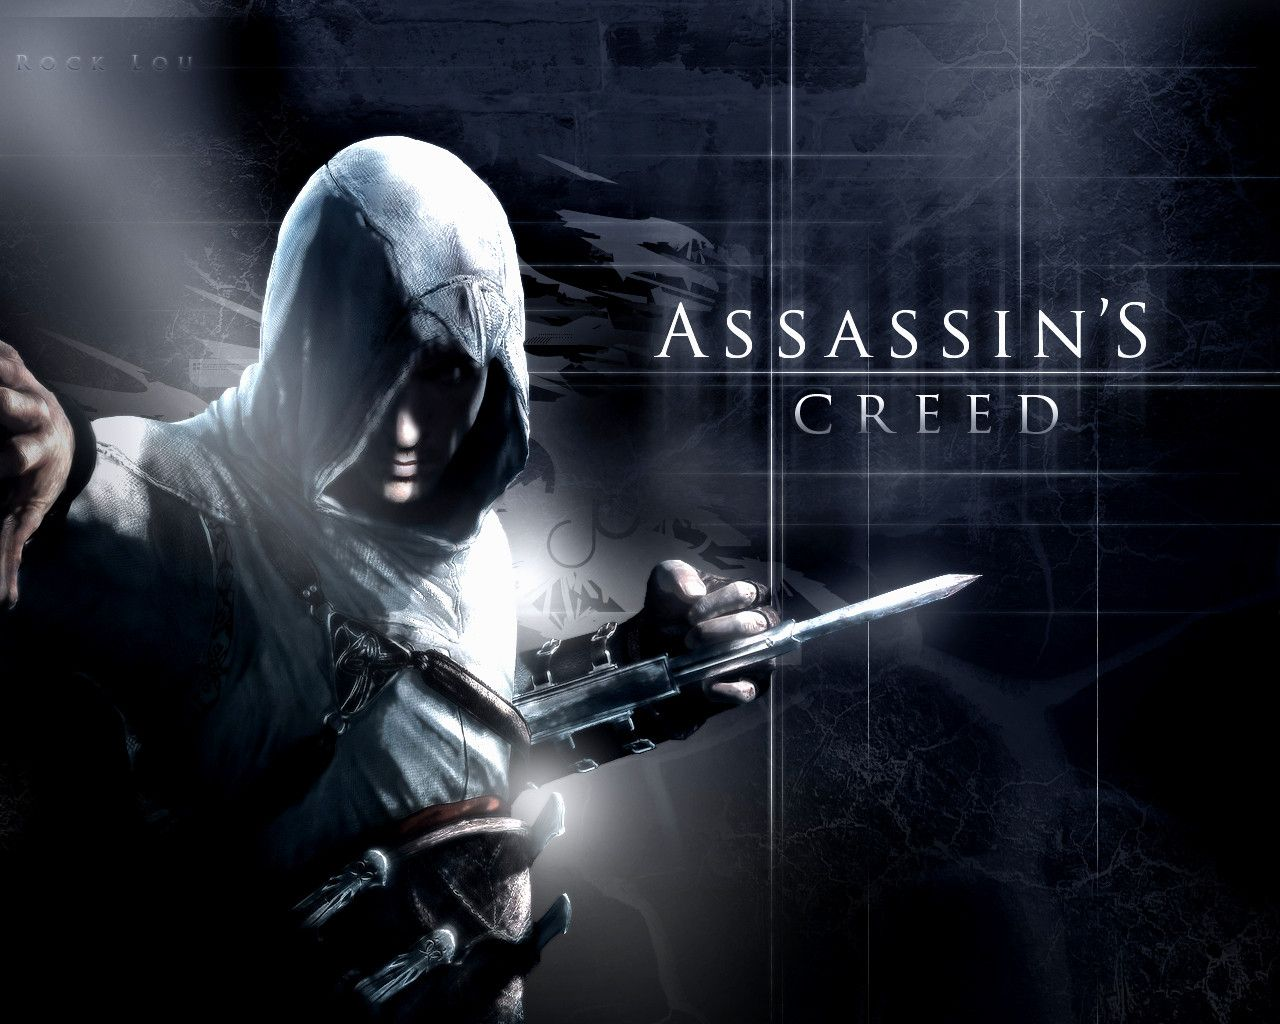 Hd Assasin Creed Wallpapers For Mobile Posted By Zoey Tremblay